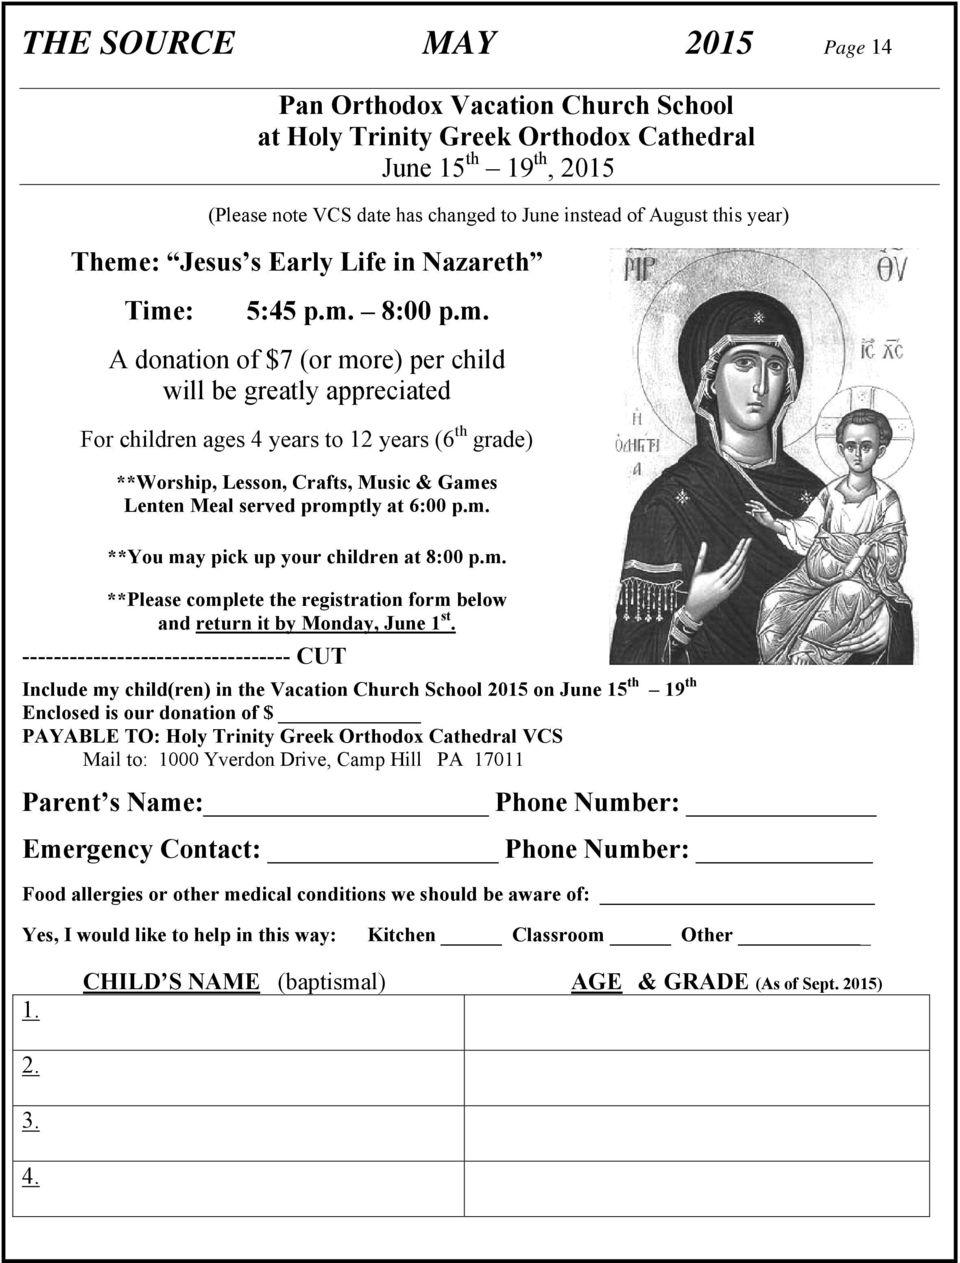 Crafts, Music & Games Lenten Meal served promptly at 6:00 p.m. **You may pick up your children at 8:00 p.m. **Please complete the registration form below and return it by Monday, June 1 st.